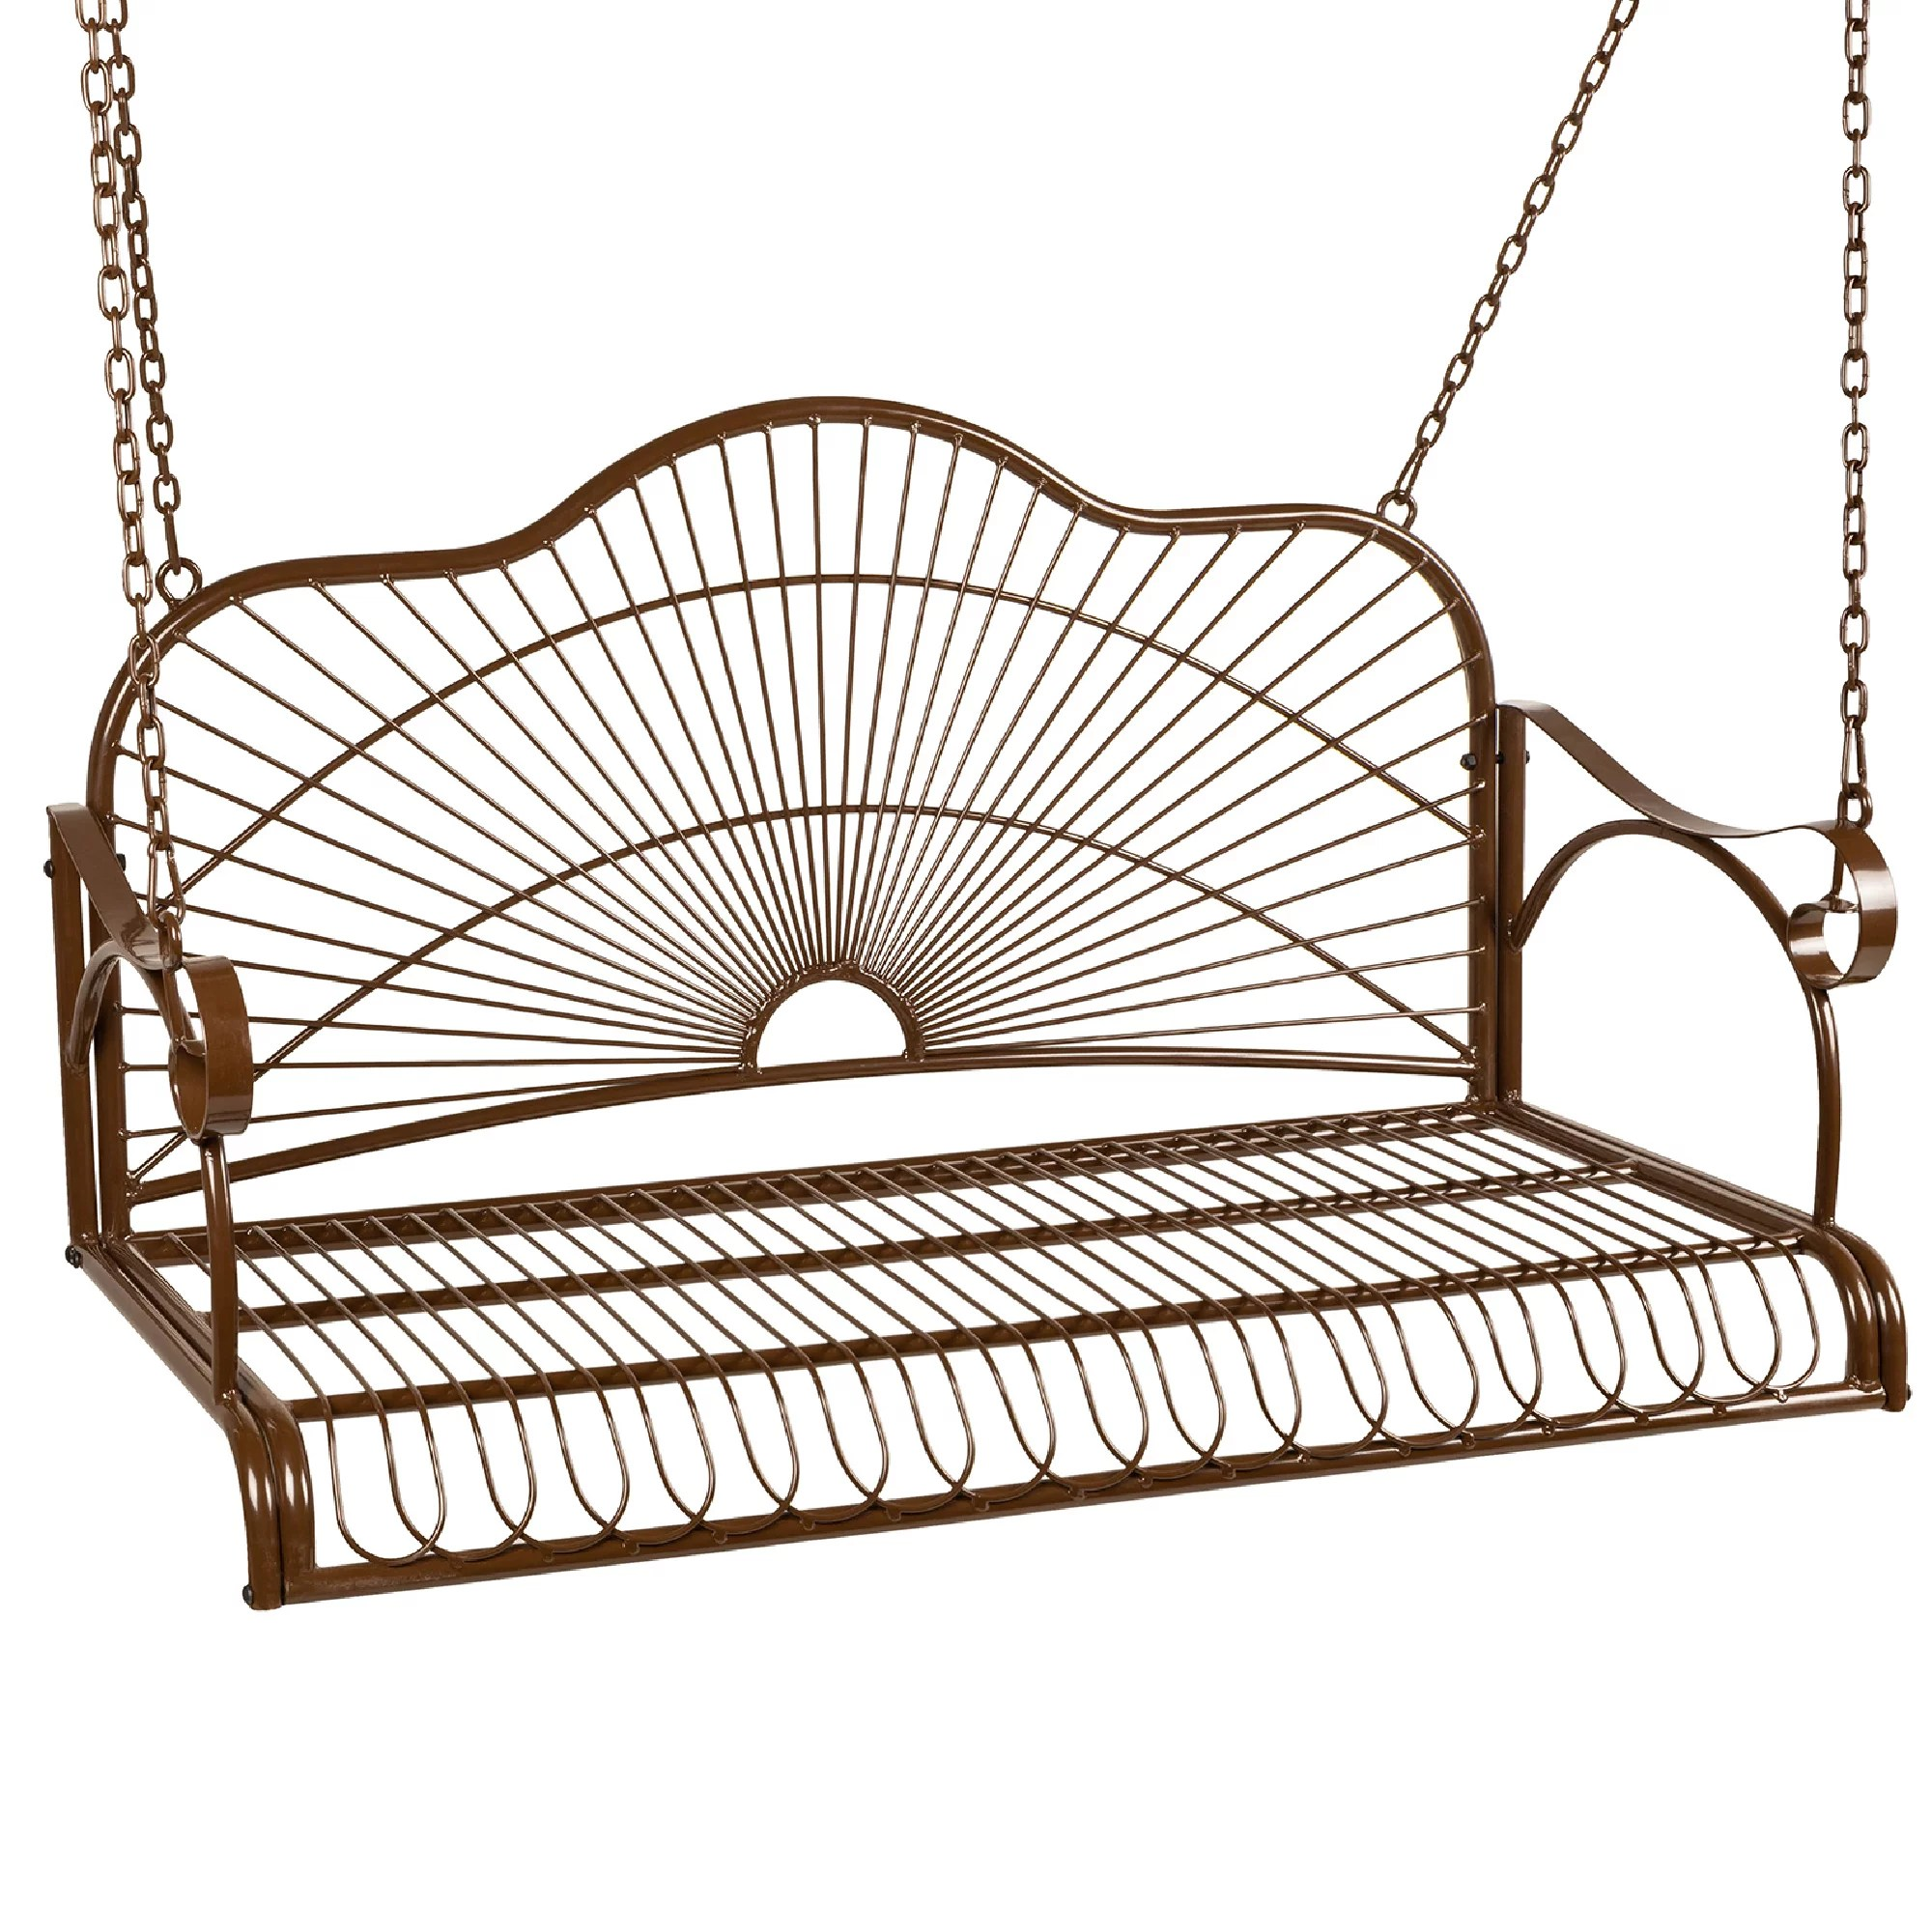 best choice products hanging iron porch swing outdoor patio furniture chair w armrests mounting chains